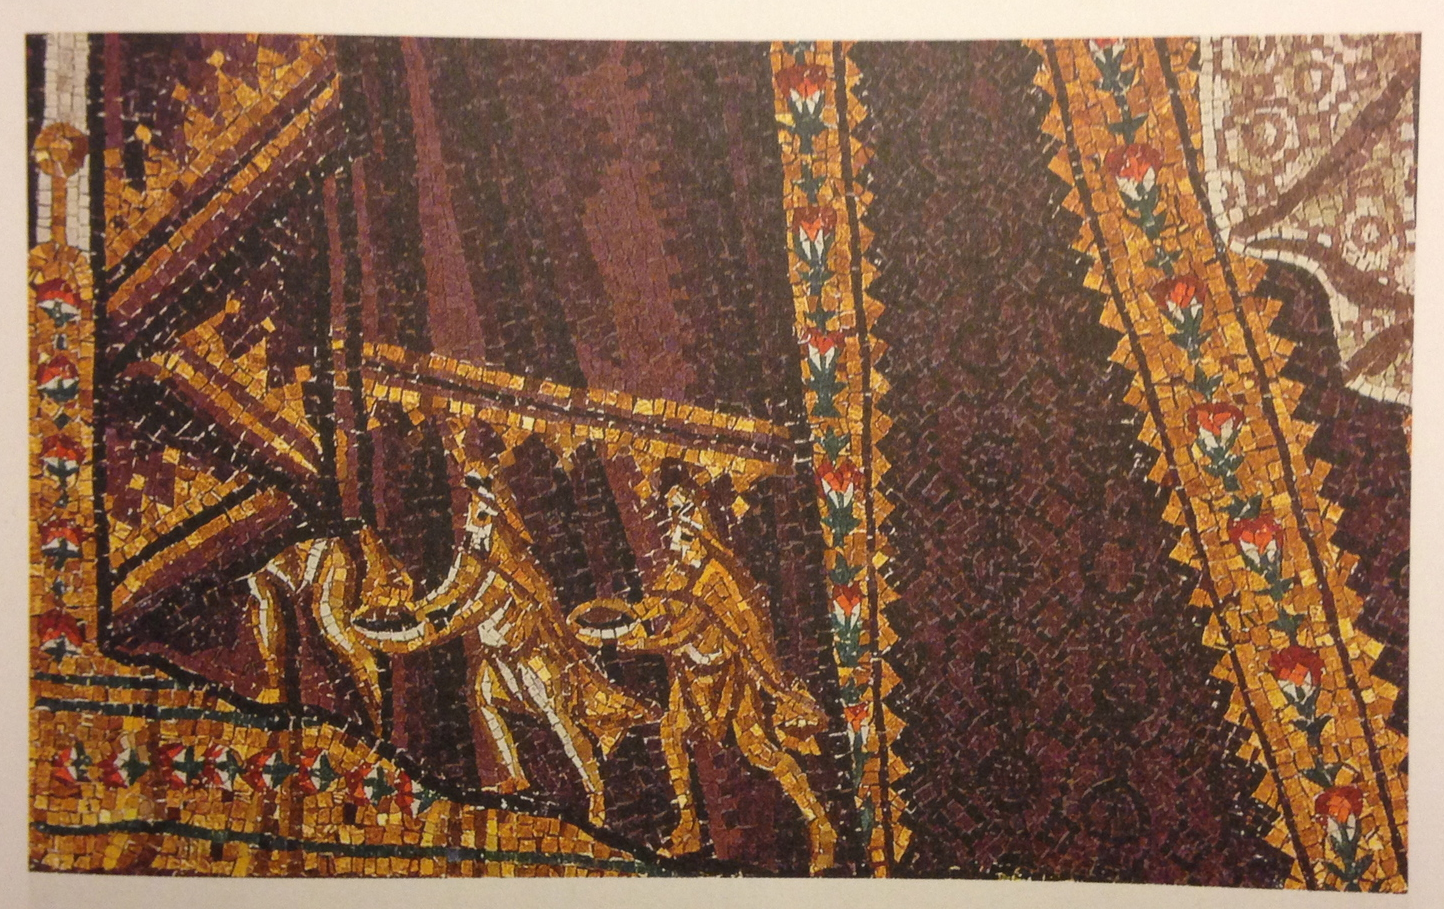 One of the Details inside Masterpieces in Detail by Rose-Marie and Rainer Hagen